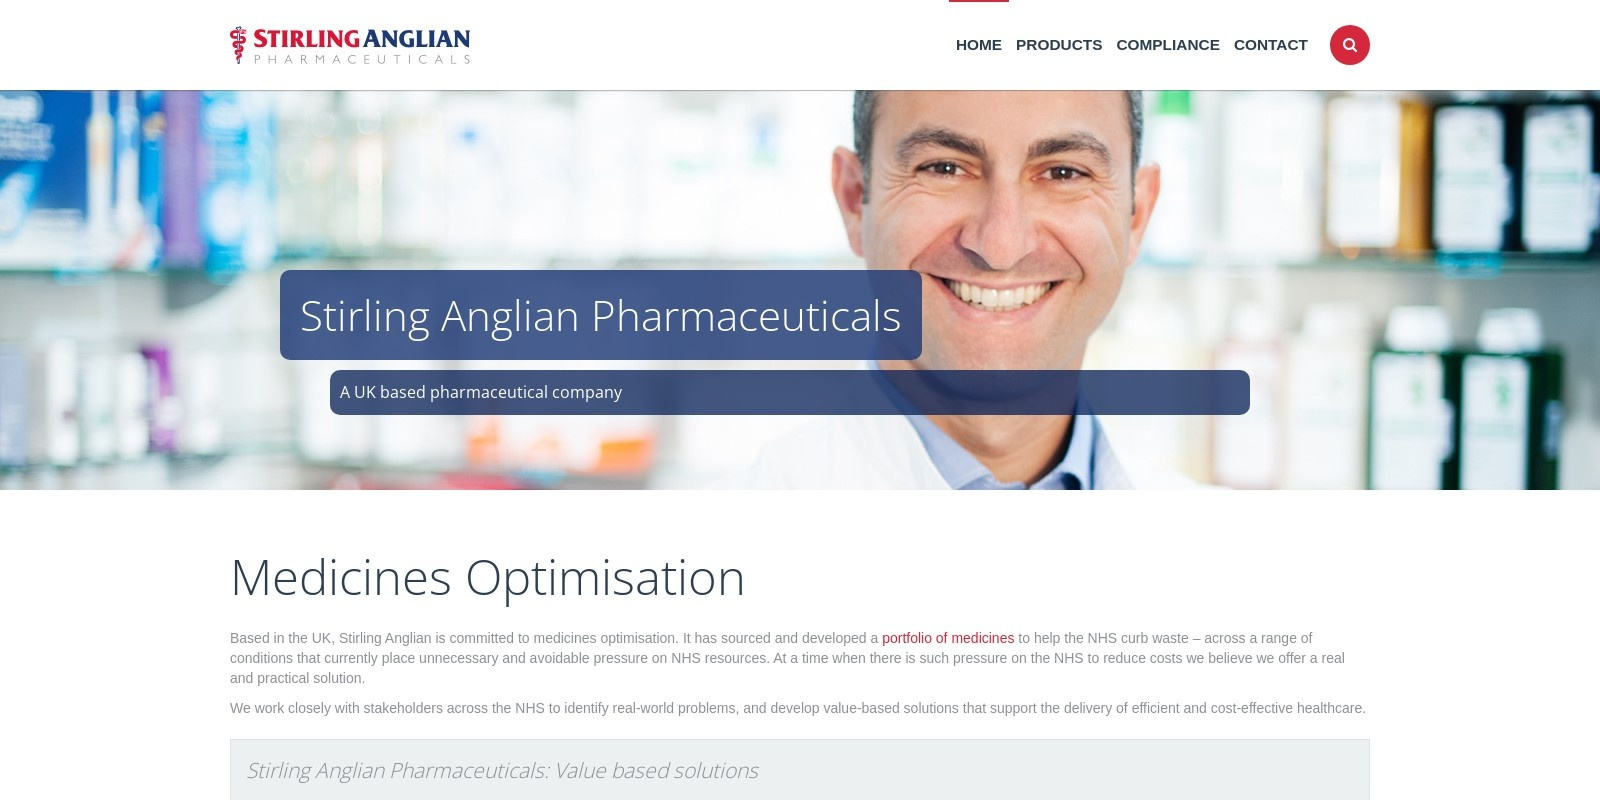 Preview of http://www.stirlinganglianpharmaceuticals.com